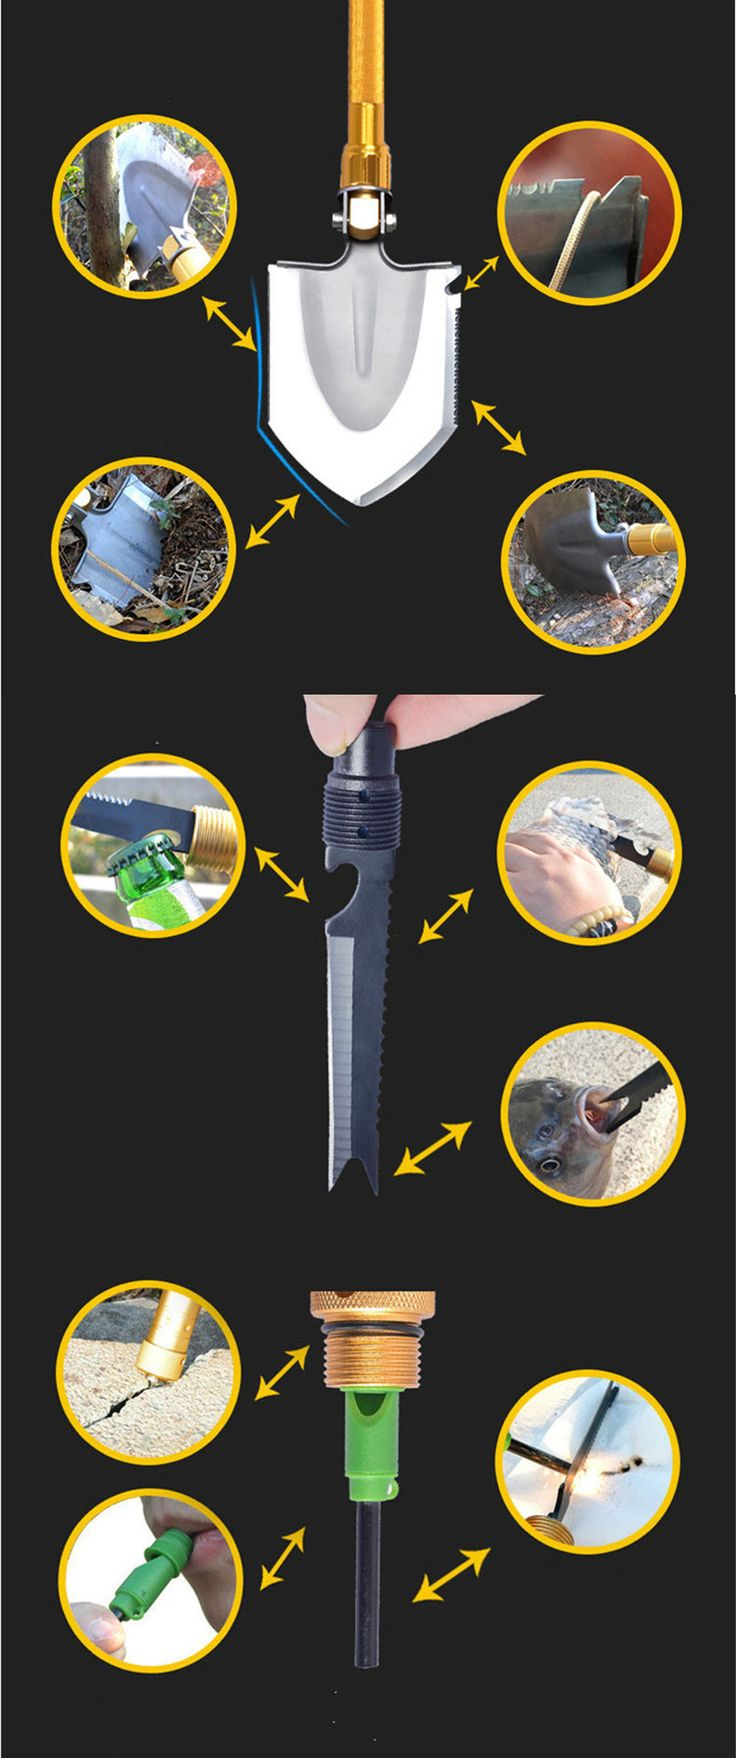 Portable multi-functional shovel military shovel professional survival tools camping outdoor emergency garden tool at http://stores.howgetrid.net/?products=portable-multi-functional-shovel-military-shovel-professional-survival-tools-camping-outdoor-emergency-garden-tool